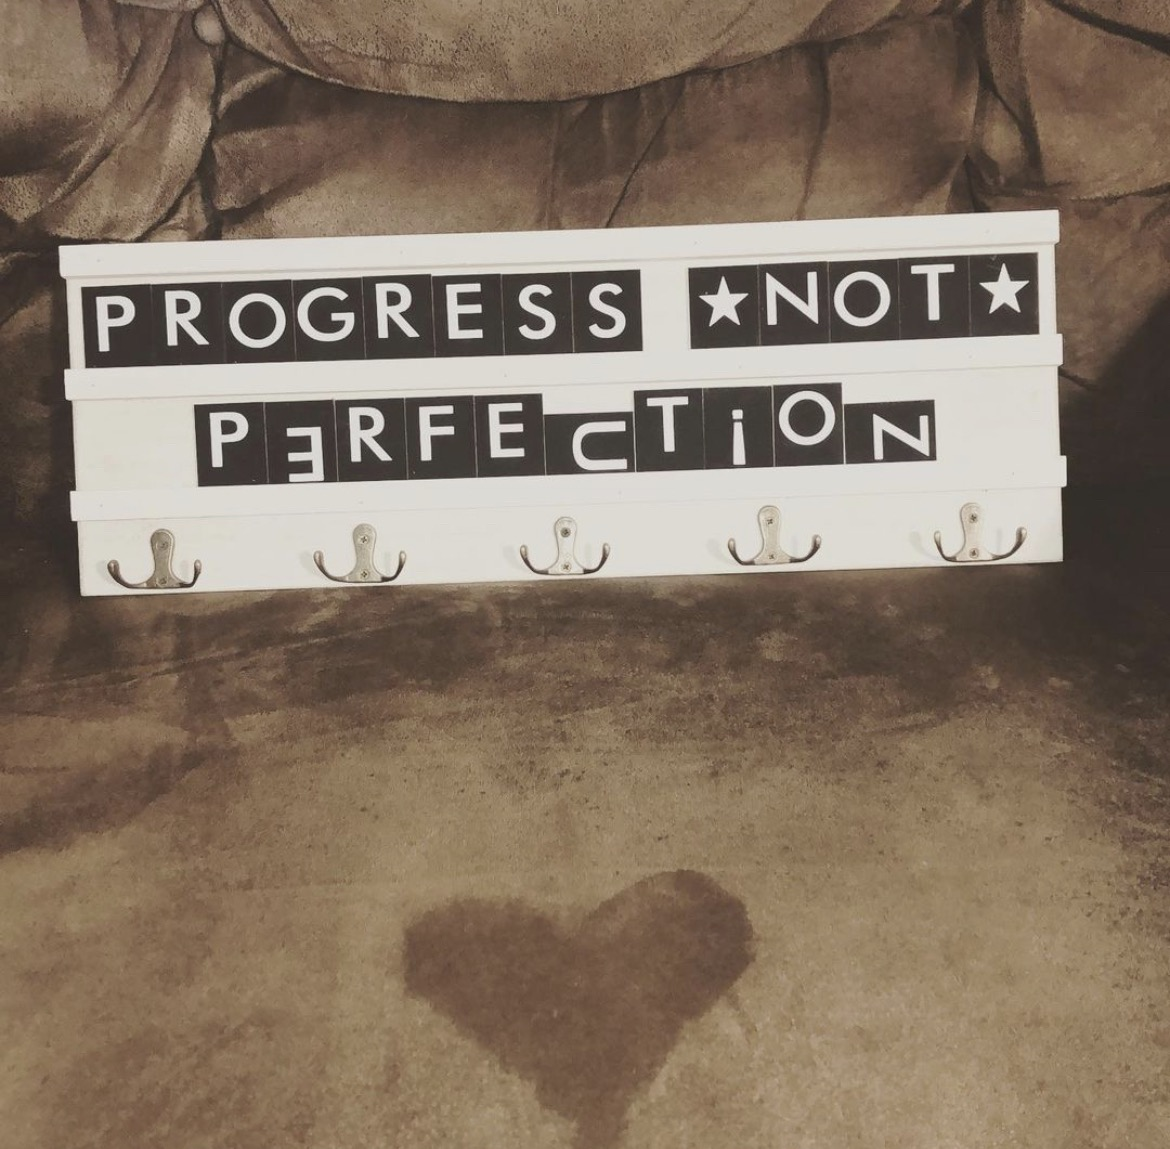 [Image] Progress *not* Perfection